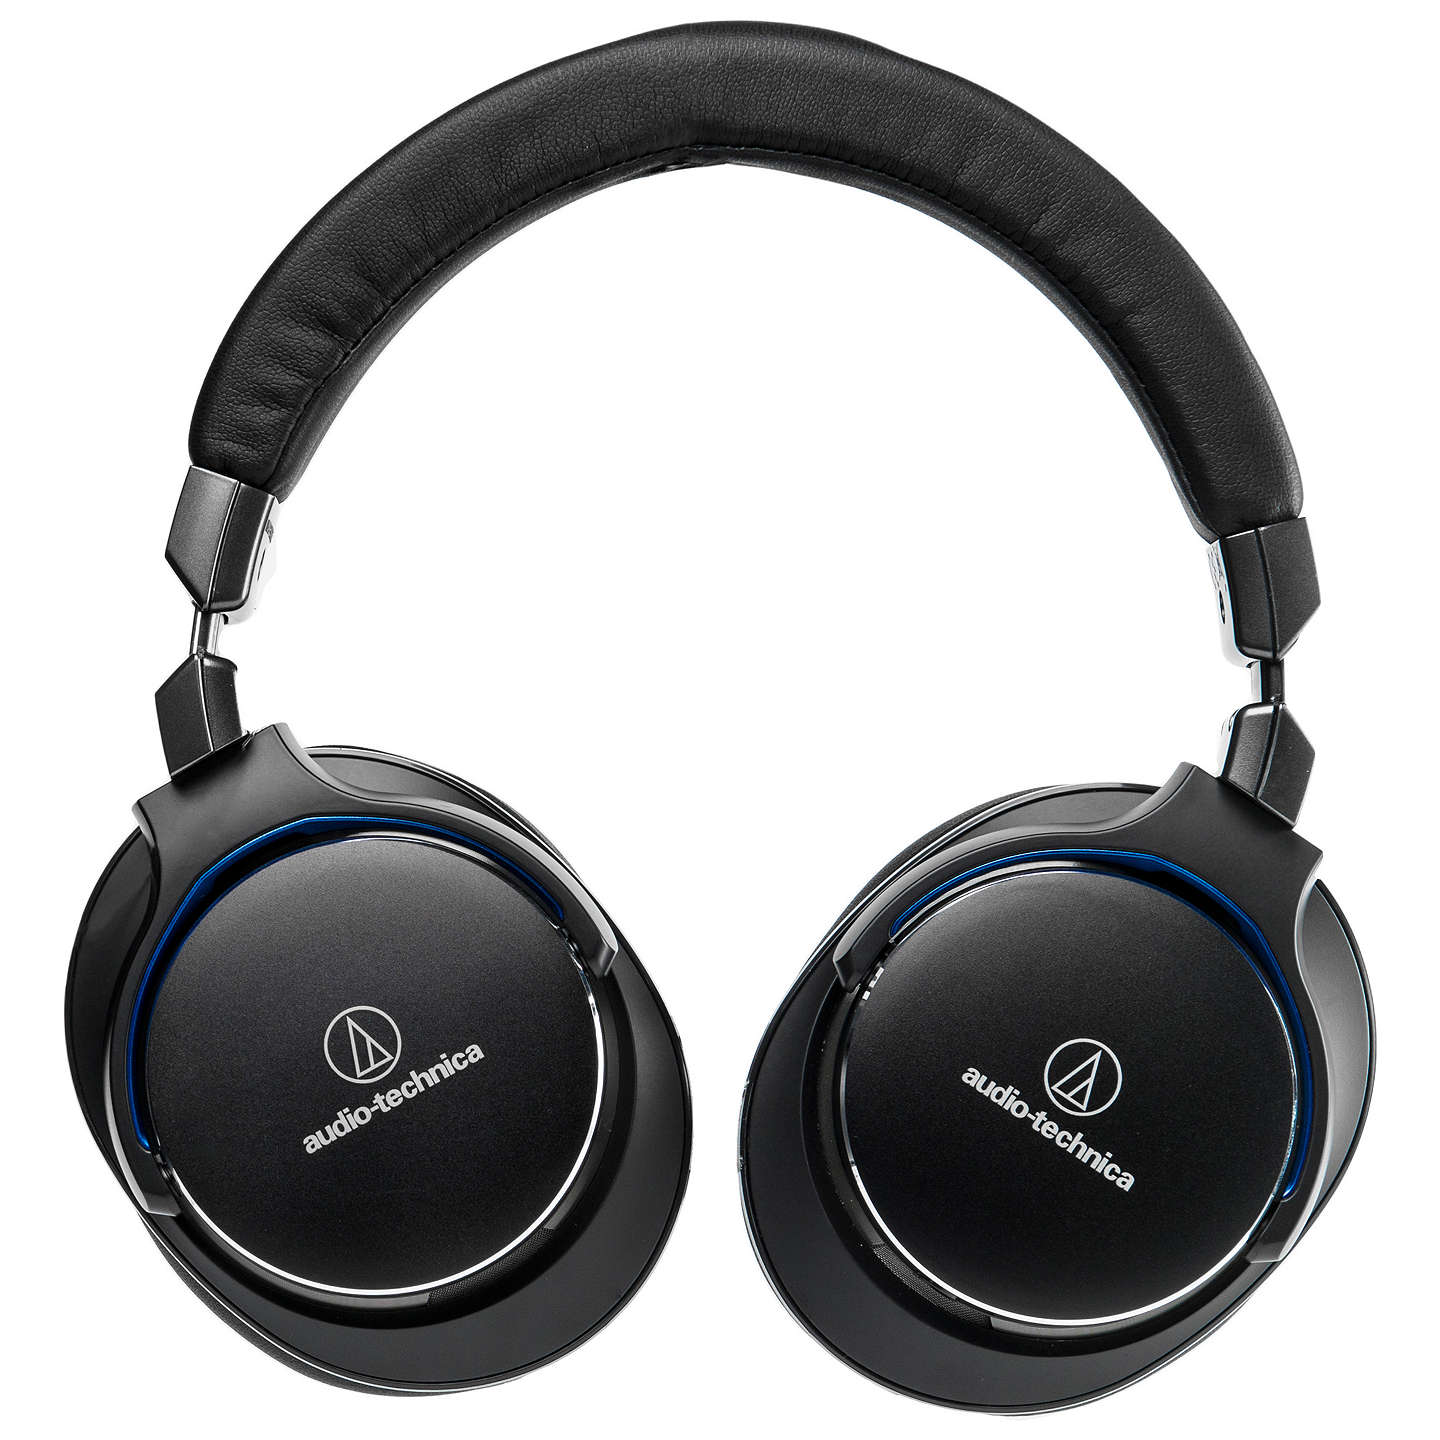 BuyAudio-Technica ATH-MSR7 Over-Ear High-Resolution Headphones, Black Online at johnlewis.com